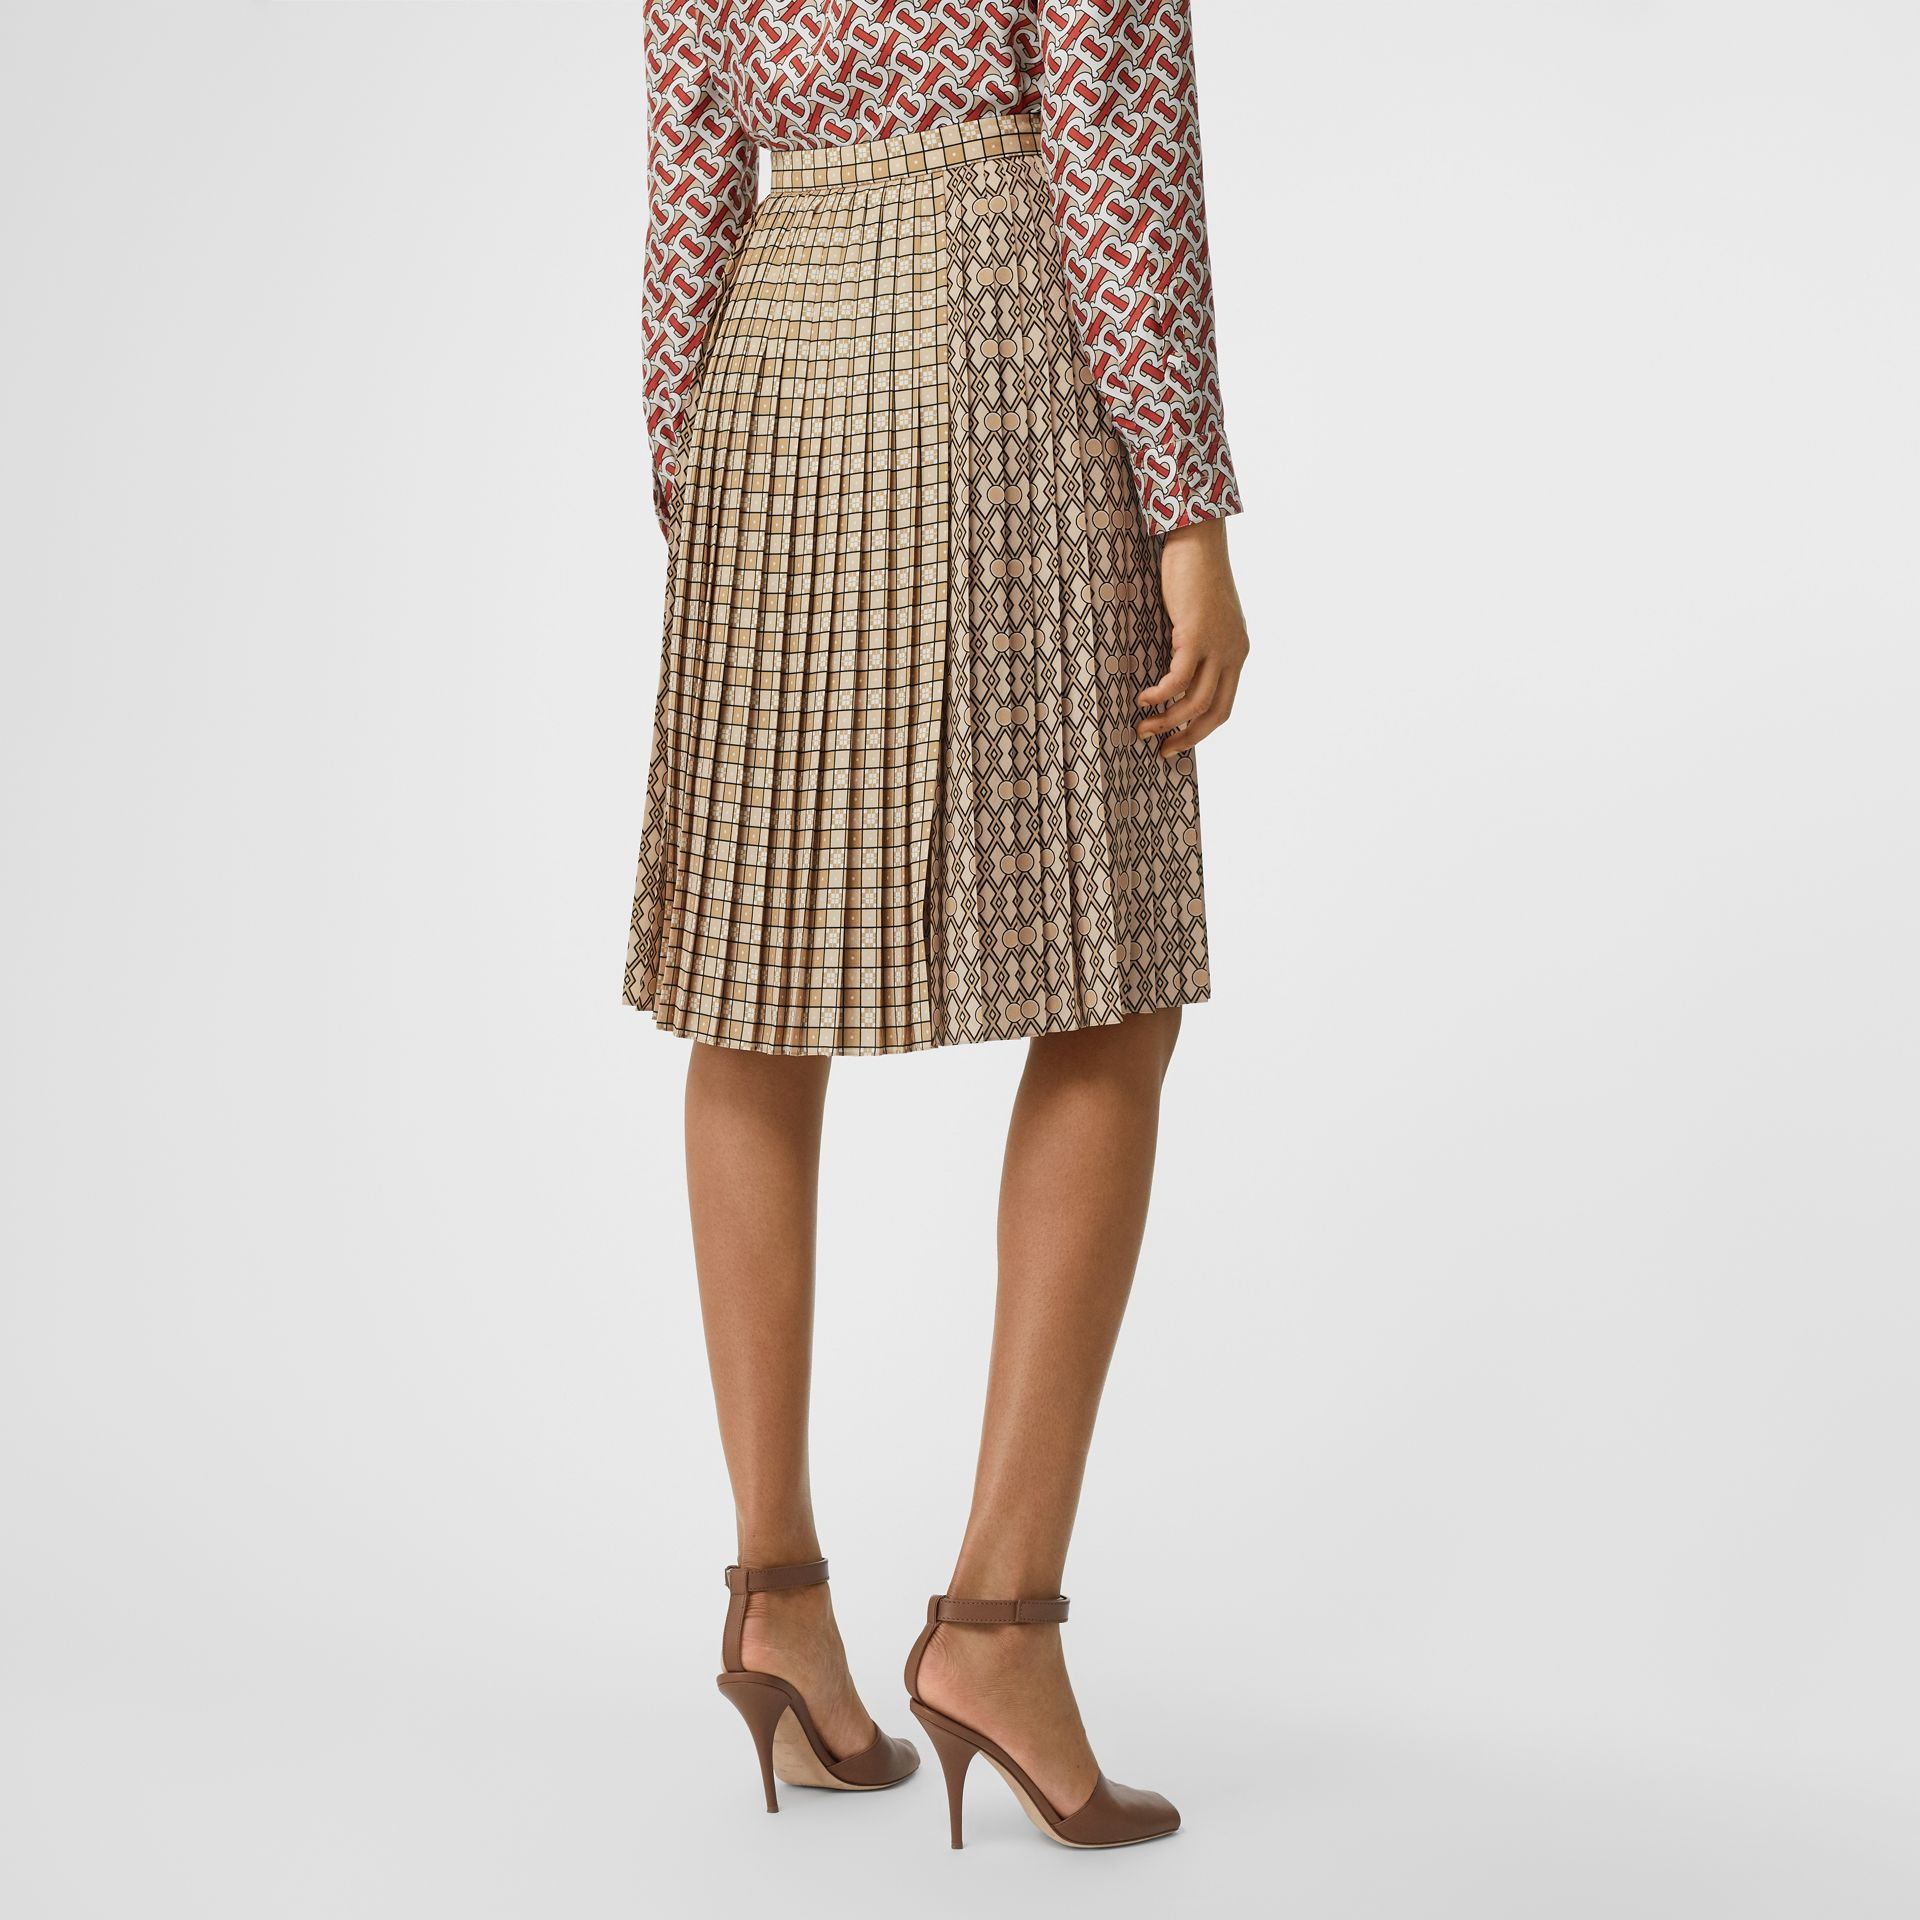 Contrast Graphic Print Pleated Skirt in Latte - Women | Burberry Hong Kong - gallery image 2